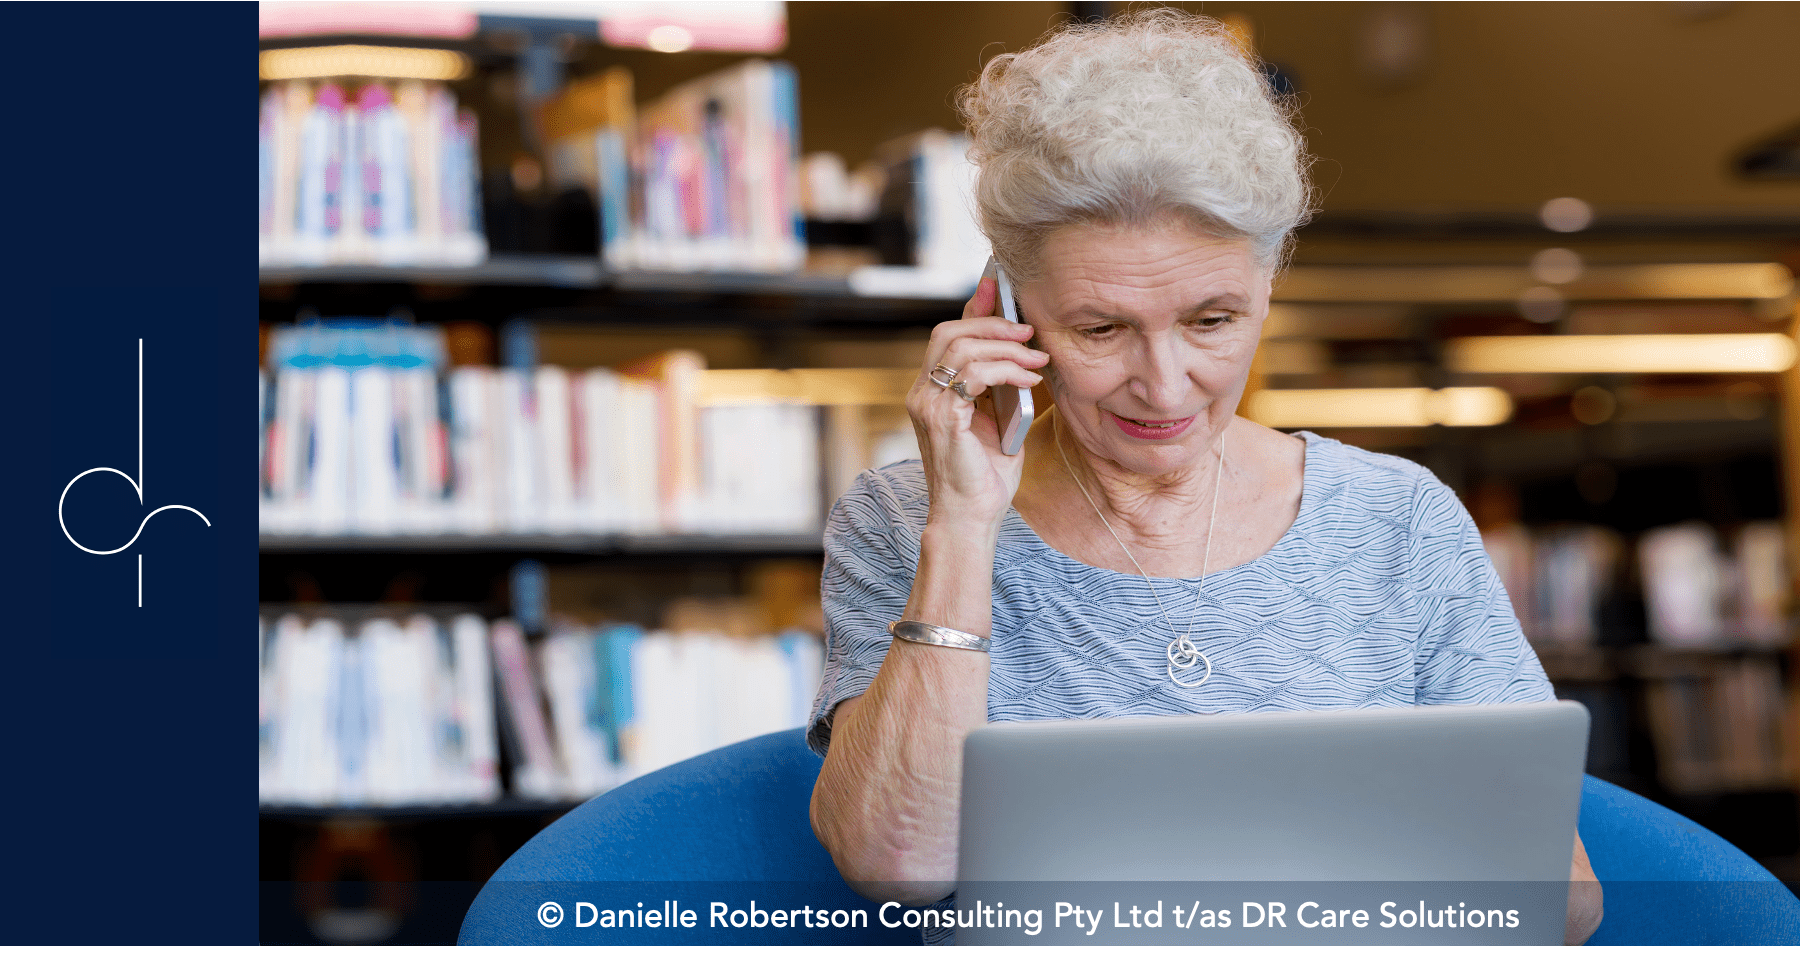 Aged Care & Technology – Do They Go Together?